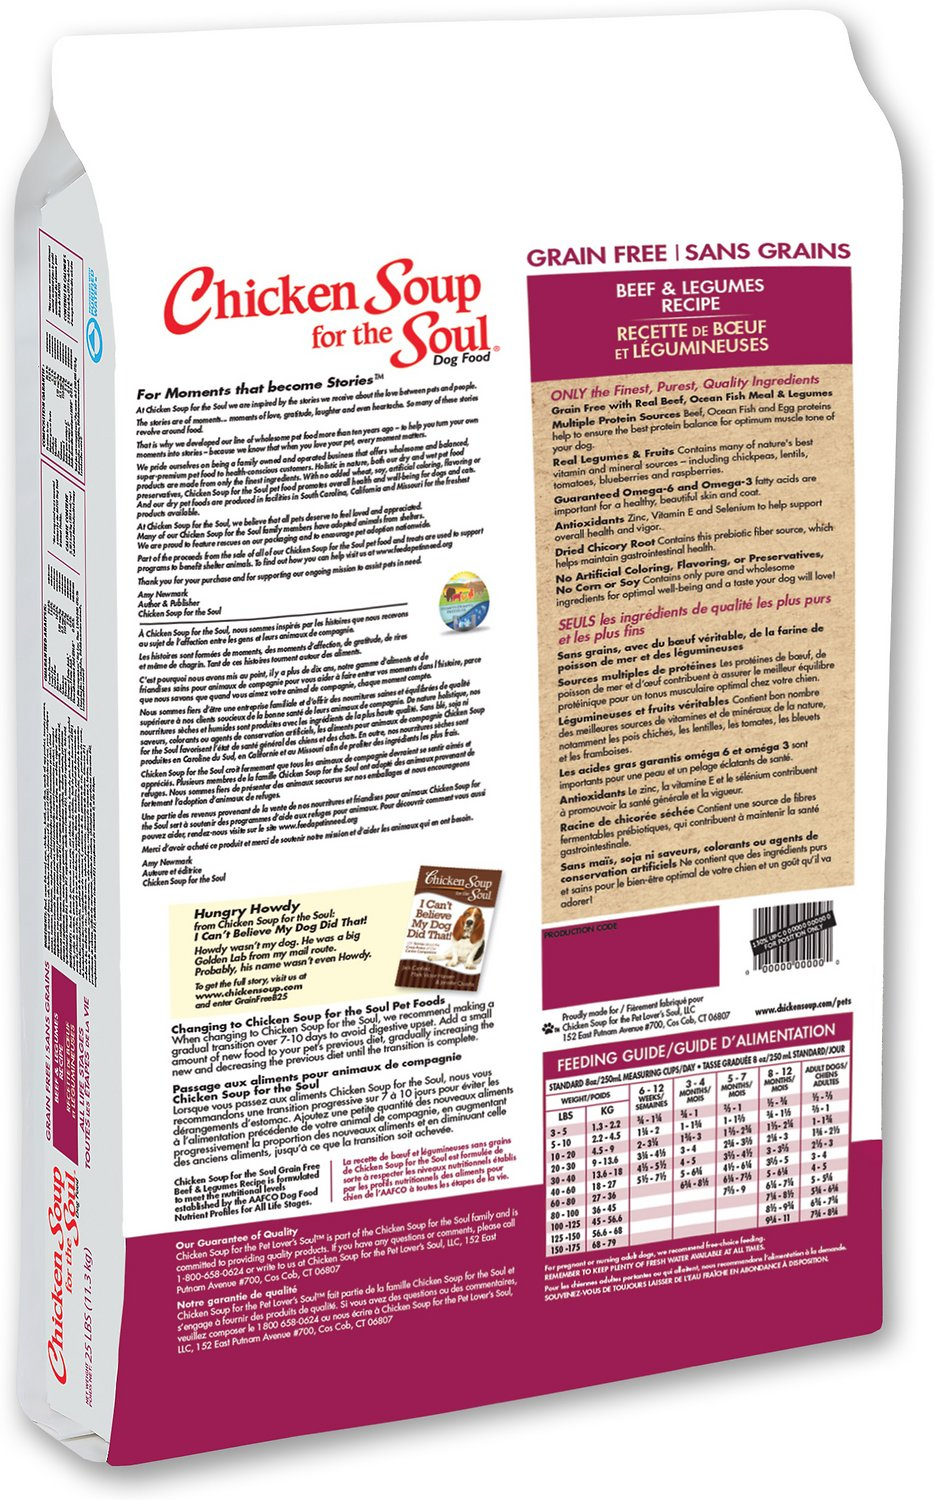 chicken soup for the soul grain free dog food reviews